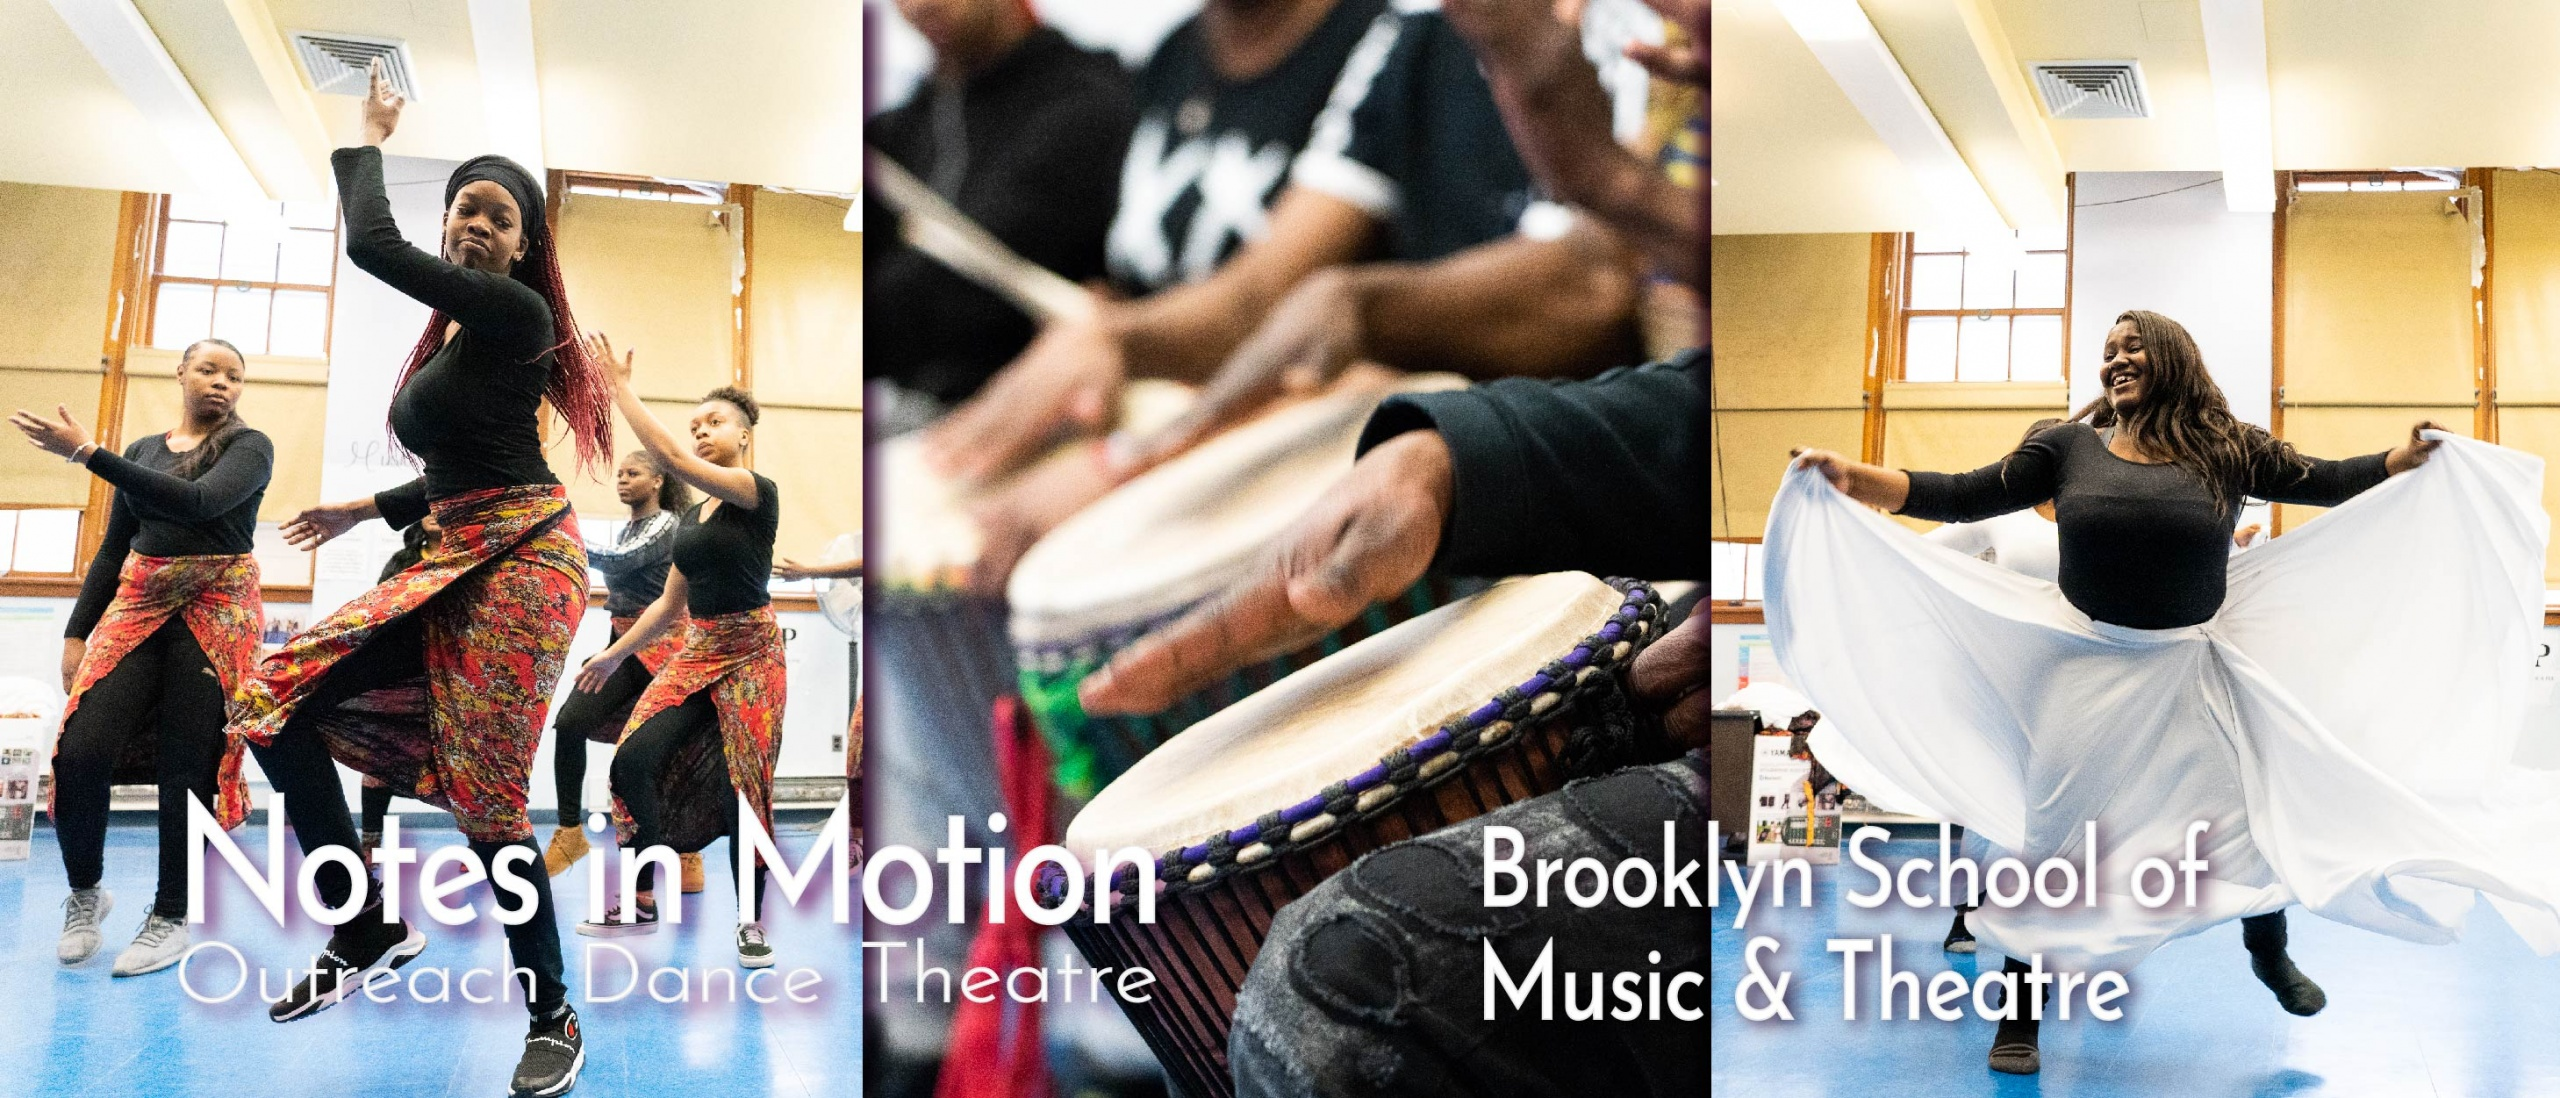 Students and Drummers in African Dance residency at Brooklyn School of Music & Theatre